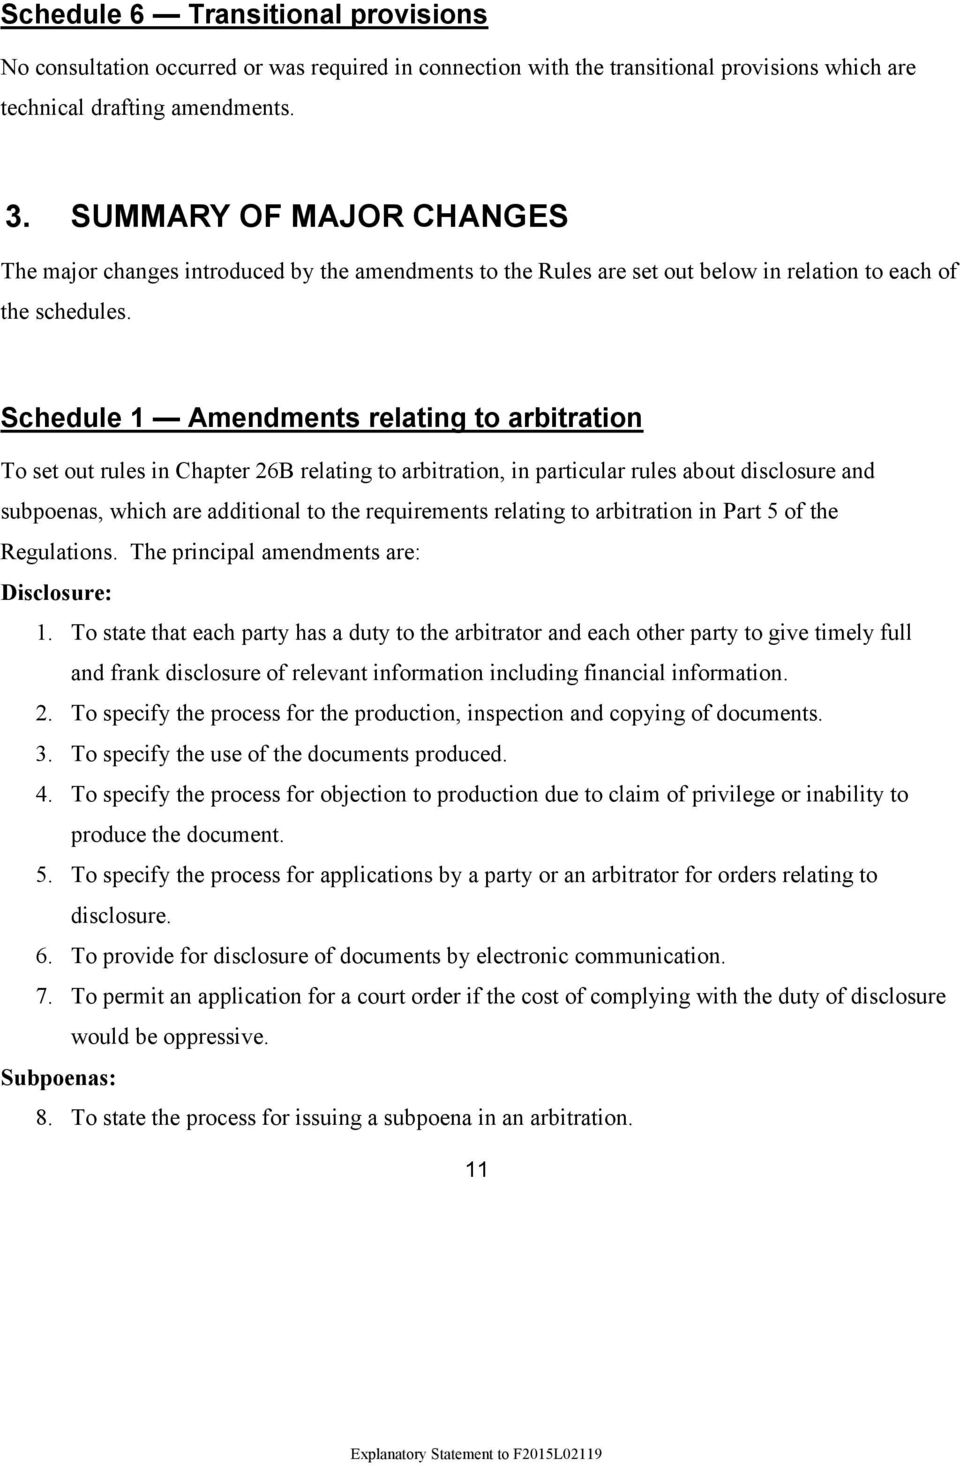 Schedule 1 Amendments relating to arbitration To set out rules in Chapter 26B relating to arbitration, in particular rules about disclosure and subpoenas, which are additional to the requirements